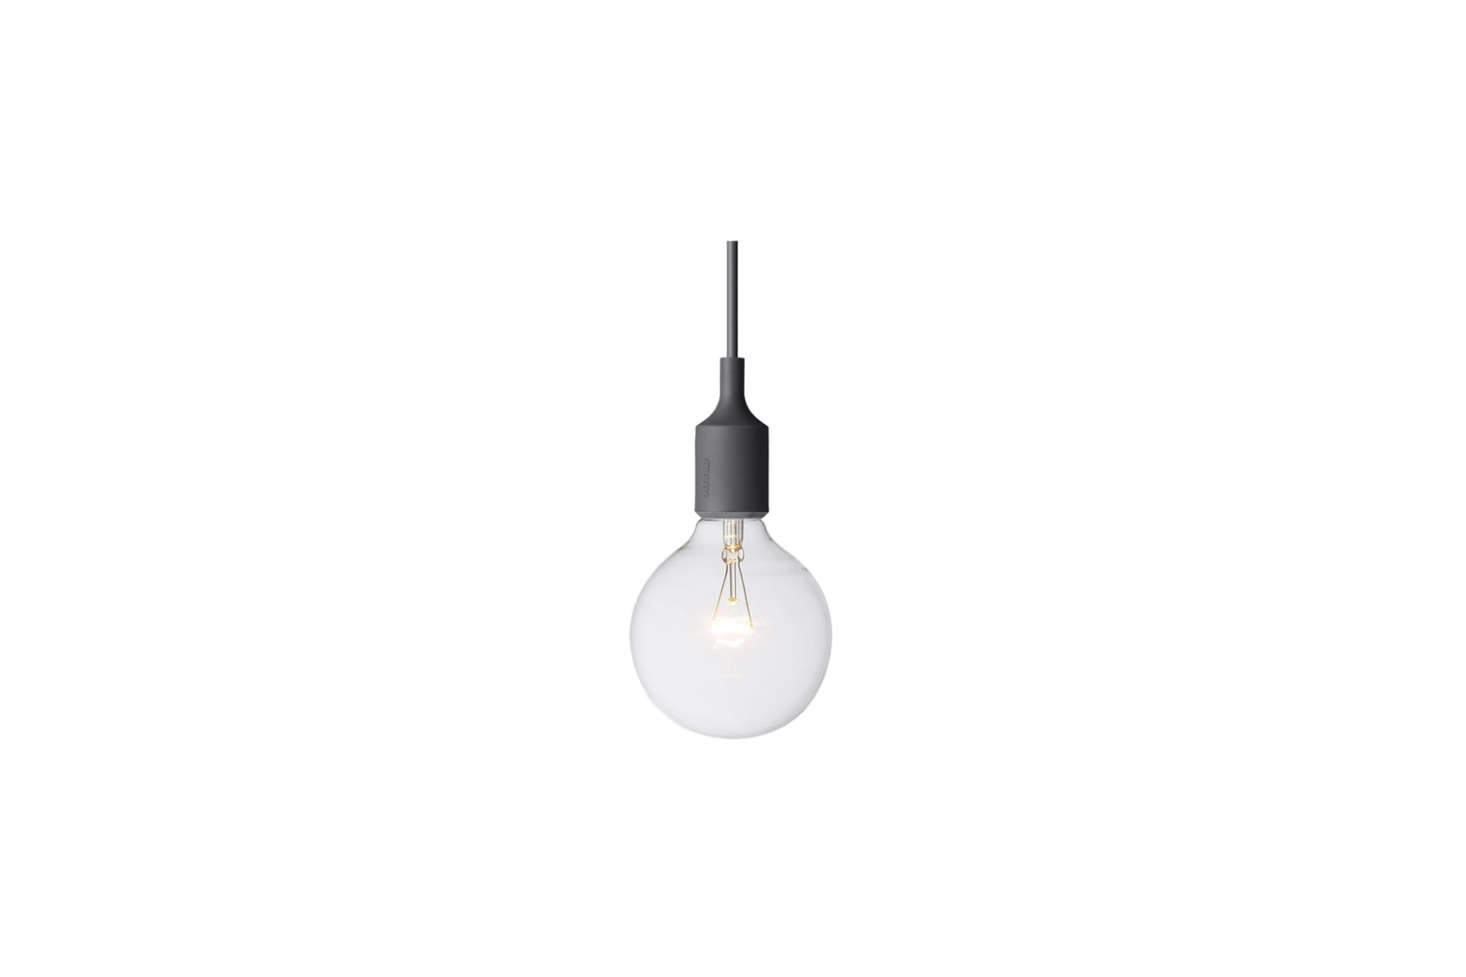 Anstruther hung a trio of Muuto E27 Ceiling Light Fixtures in black ($79 each from YLighting) over her kitchen island.